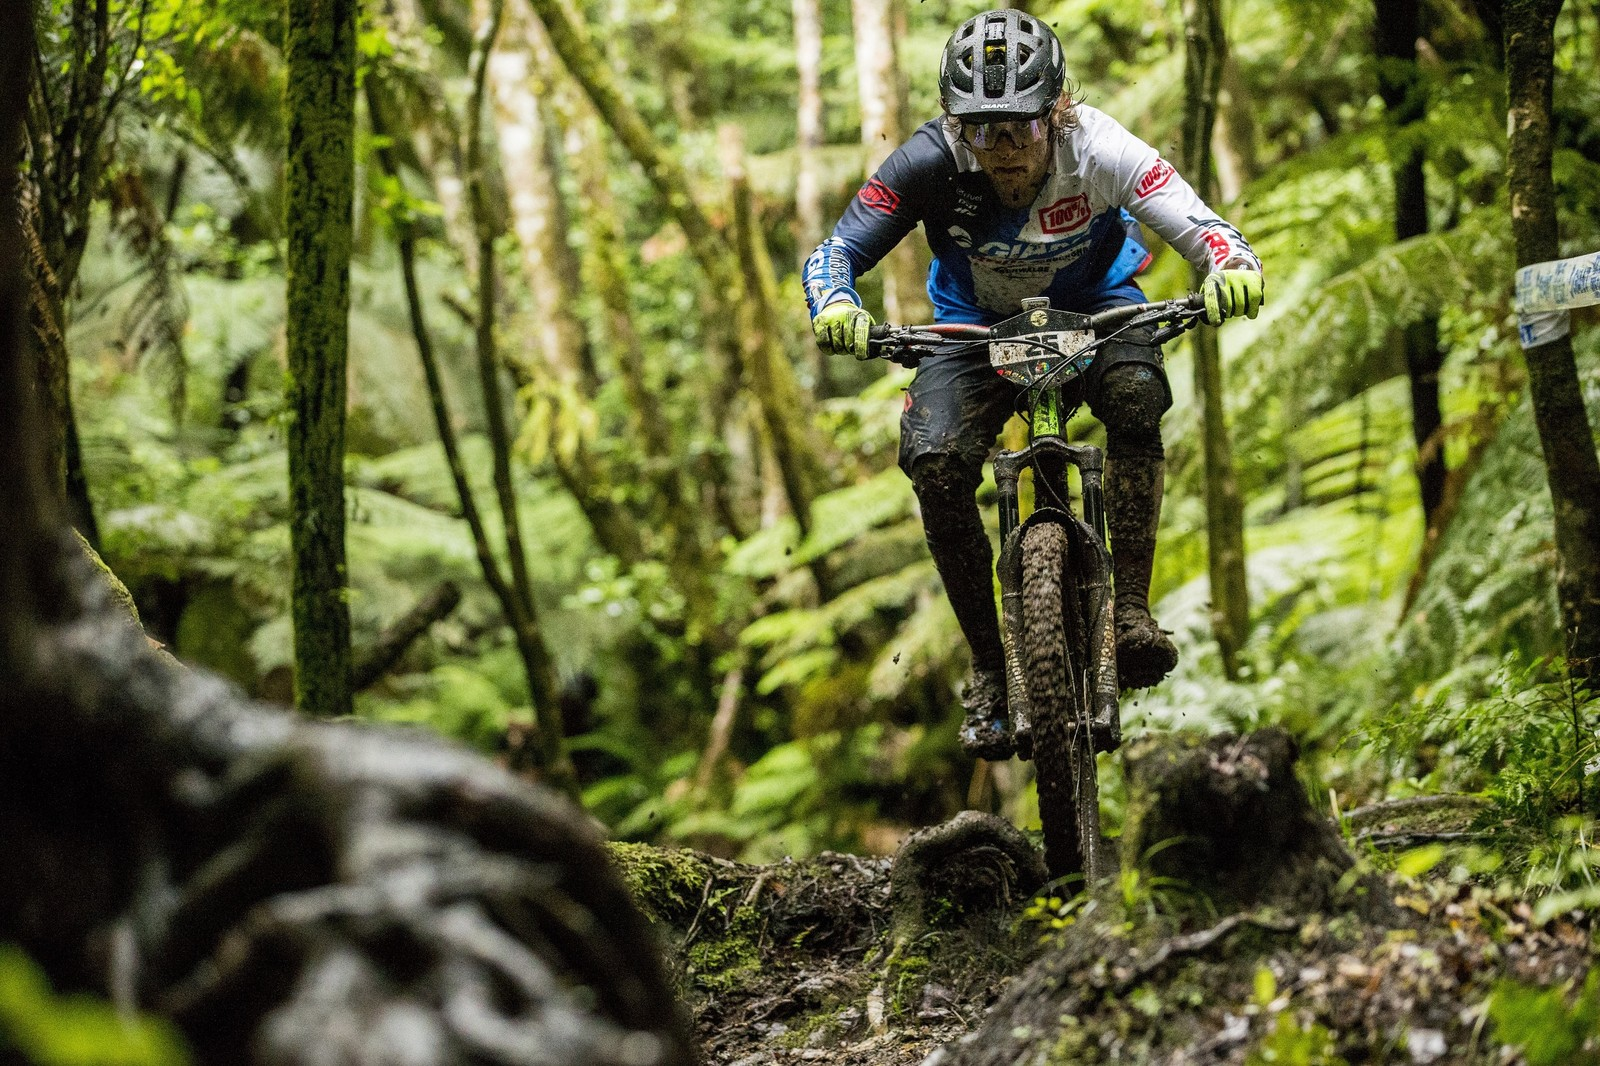 2017 Enduro World Series Round 1: A Wet and Wild Start in